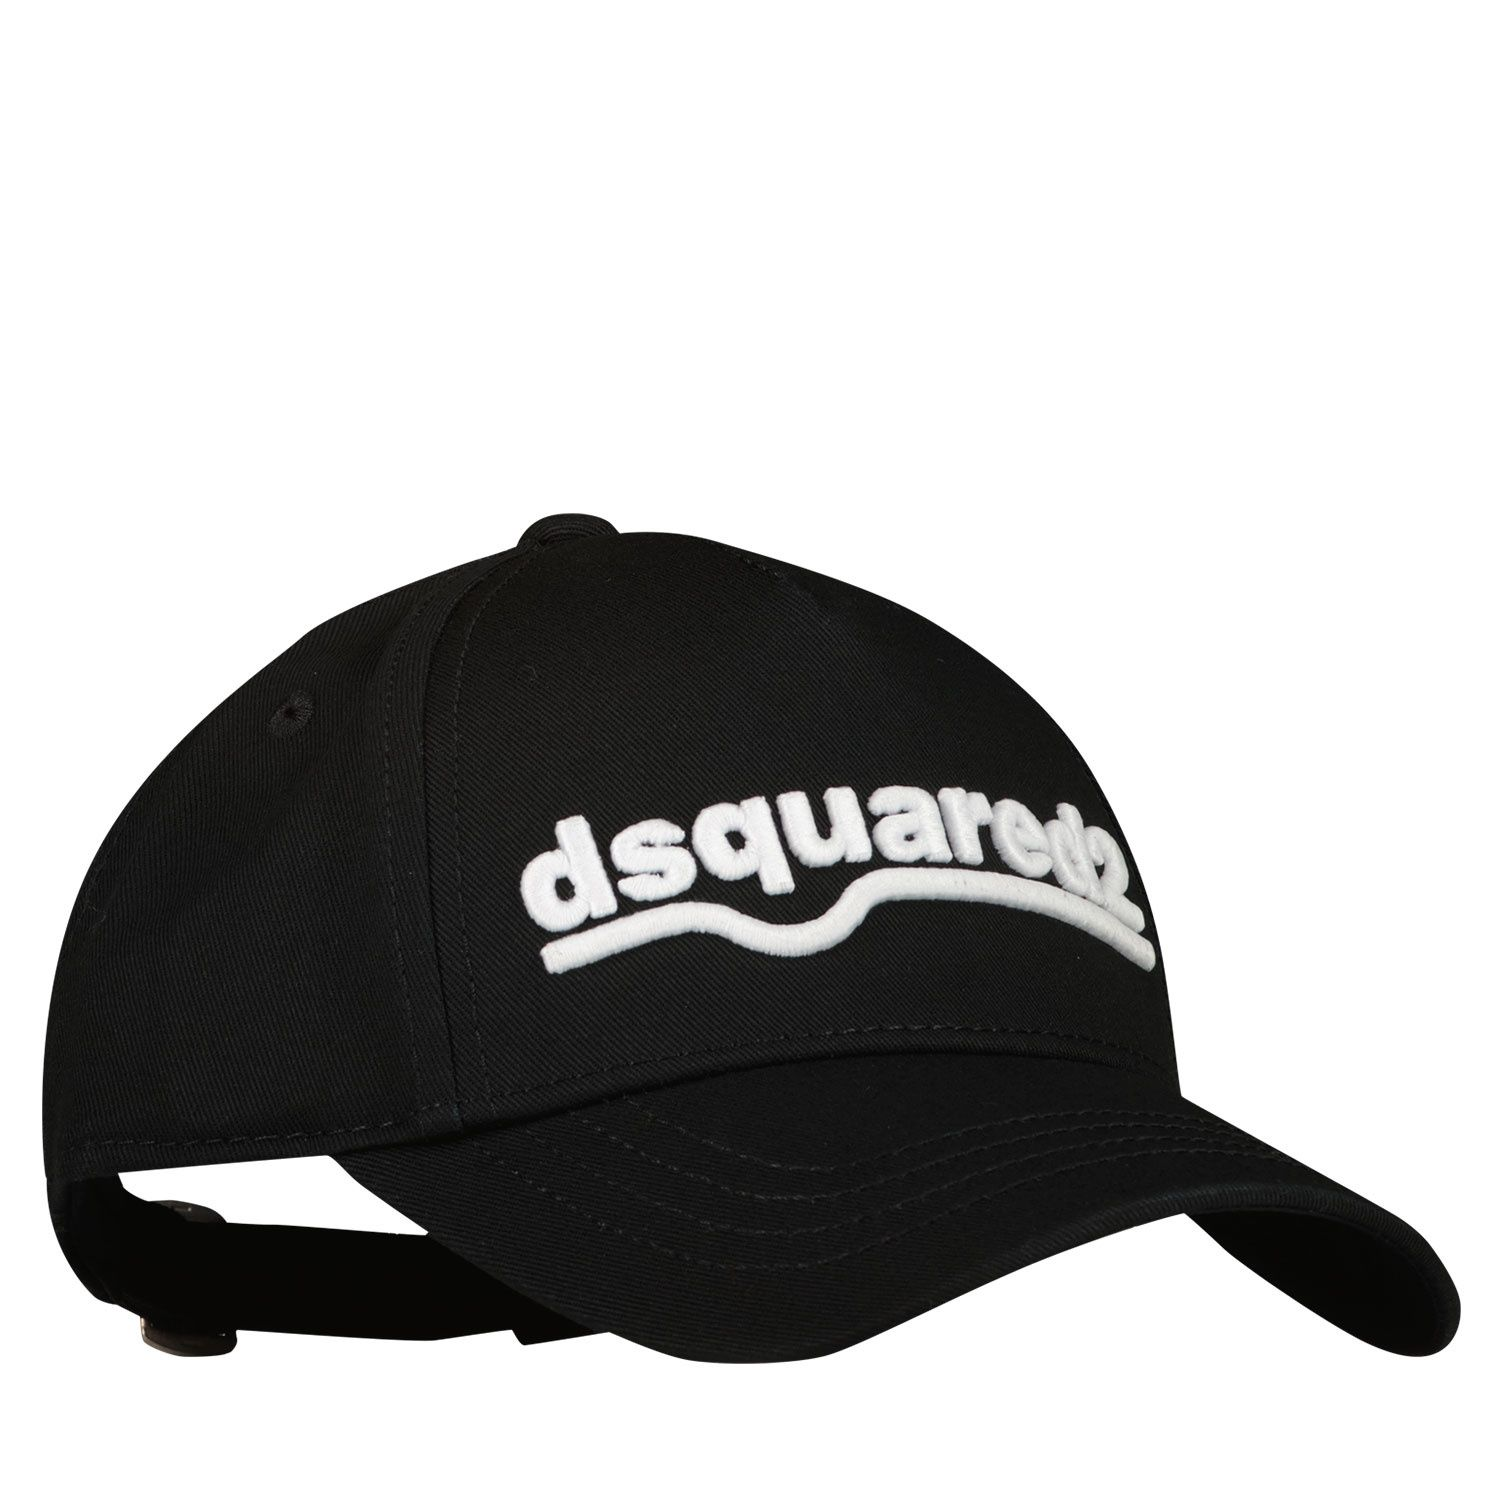 Picture of Dsquared2 DQ0470 baby hat black